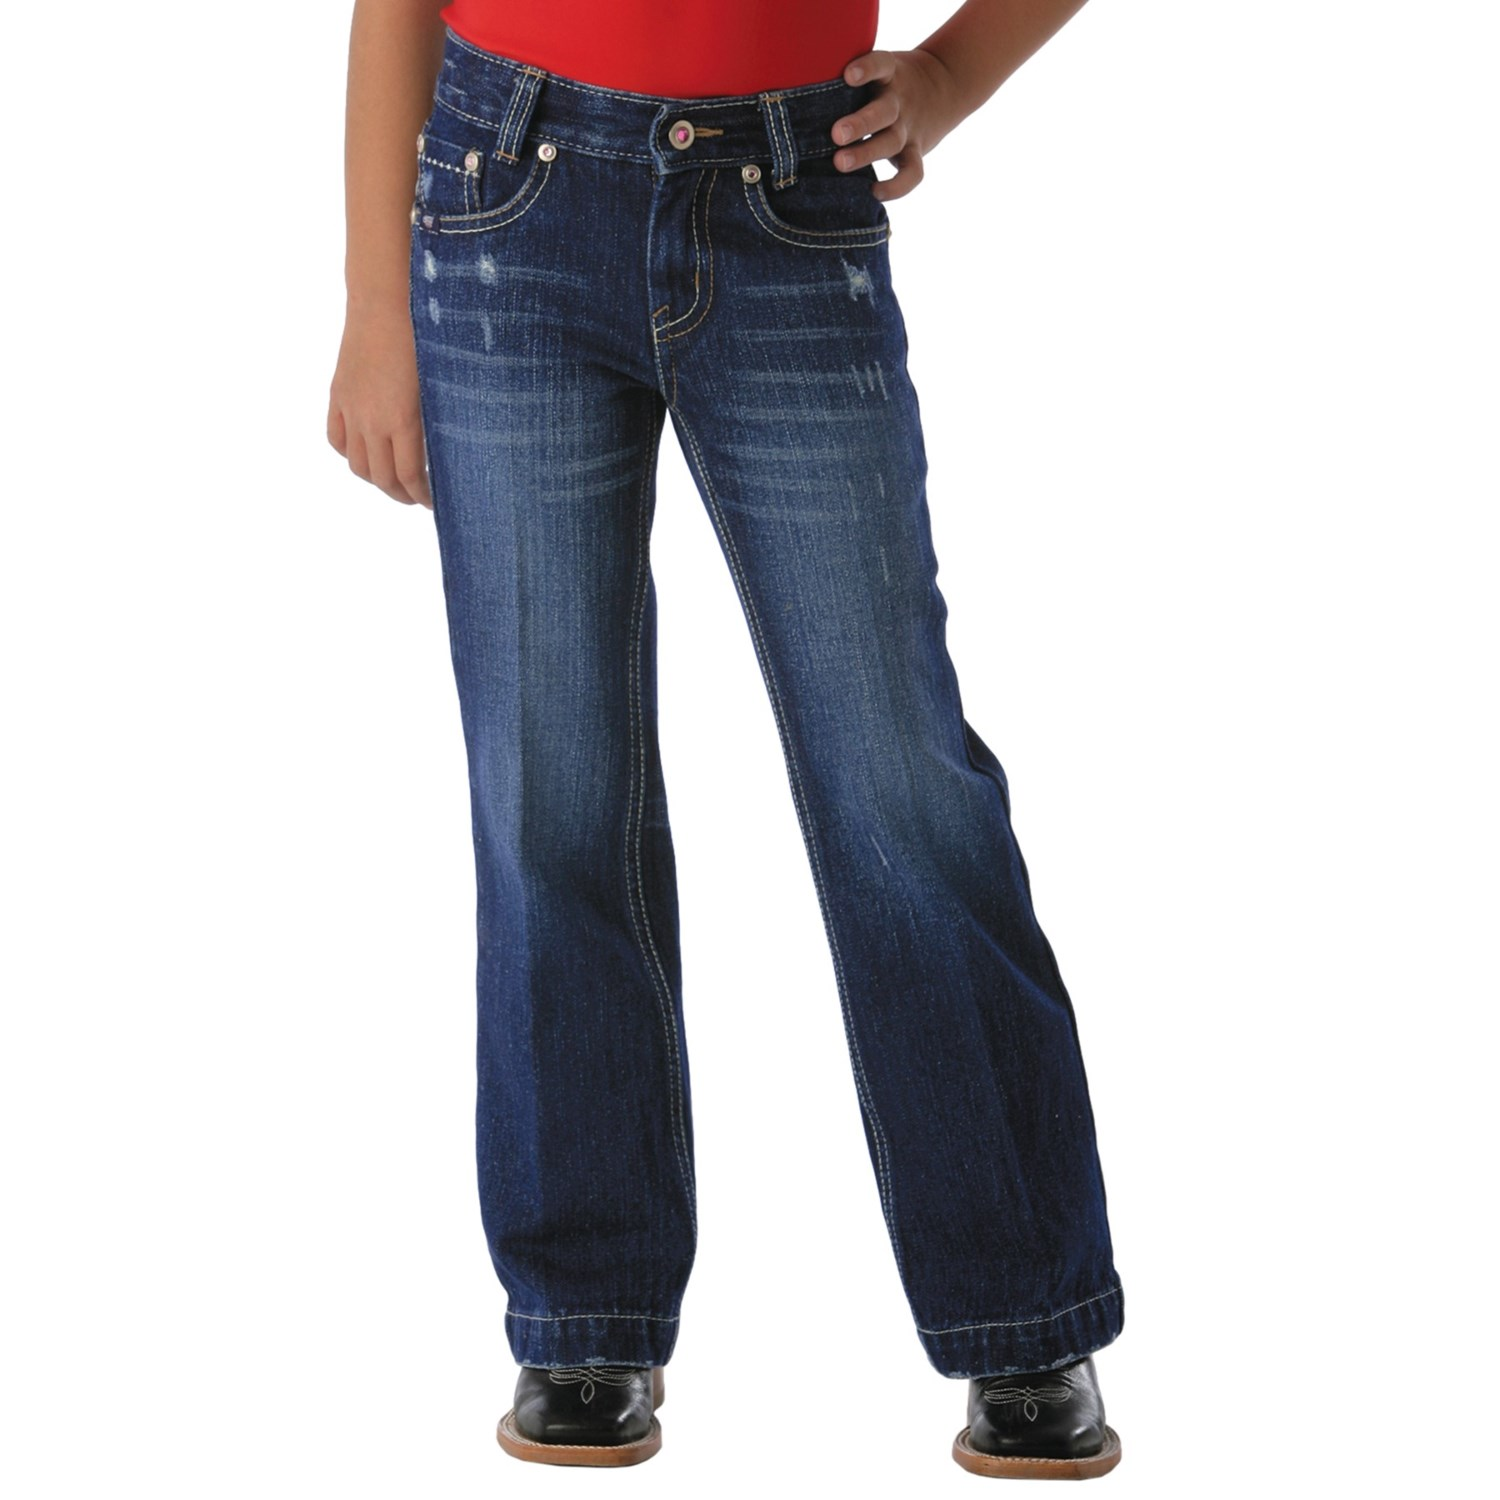 Free shipping BOTH ways on Jeans, Girls, from our vast selection of styles. Fast delivery, and 24/7/ real-person service with a smile. Click or call